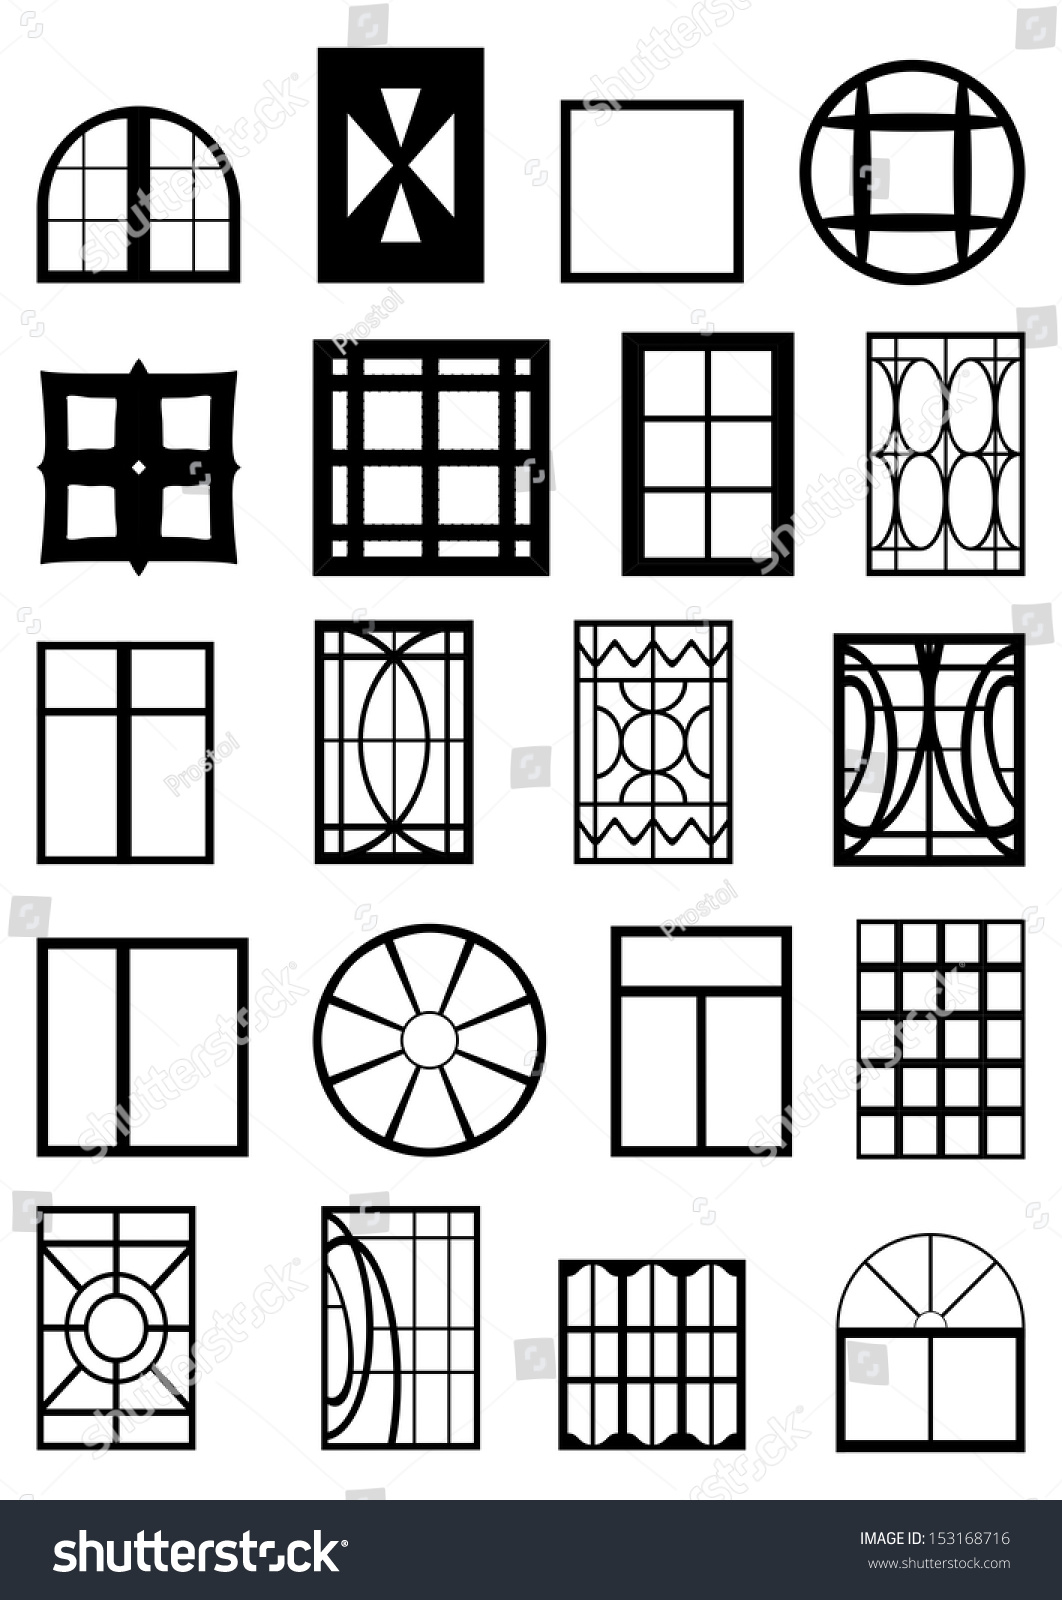 different types of window frames black contour on a white background